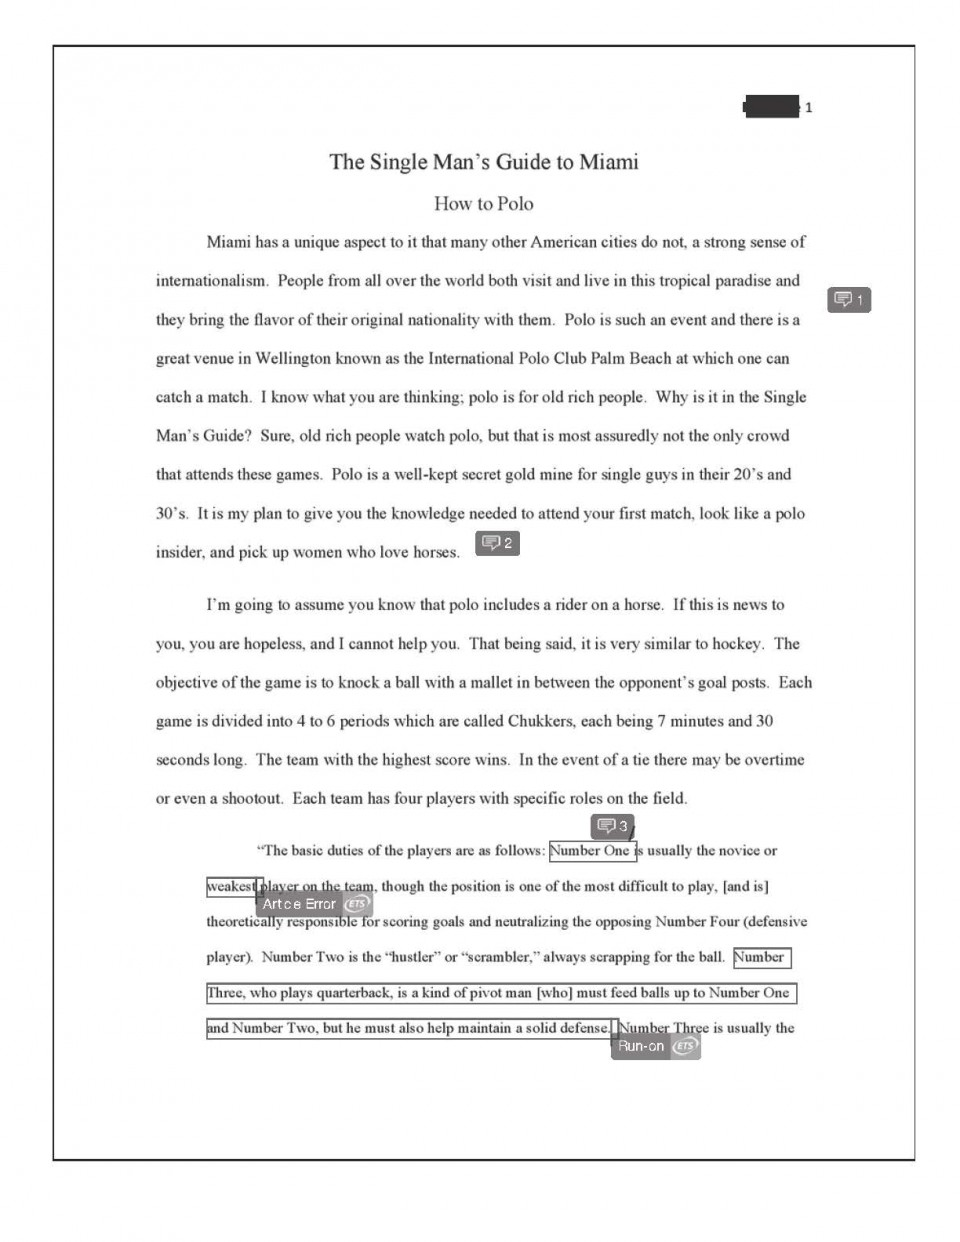 005 Informative Essay Topics Essays Sample Funny Argumentative For Middle School Final How To Polo Redacted P College Students Hilarious Good Remarkable High 4th Grade Expository 960